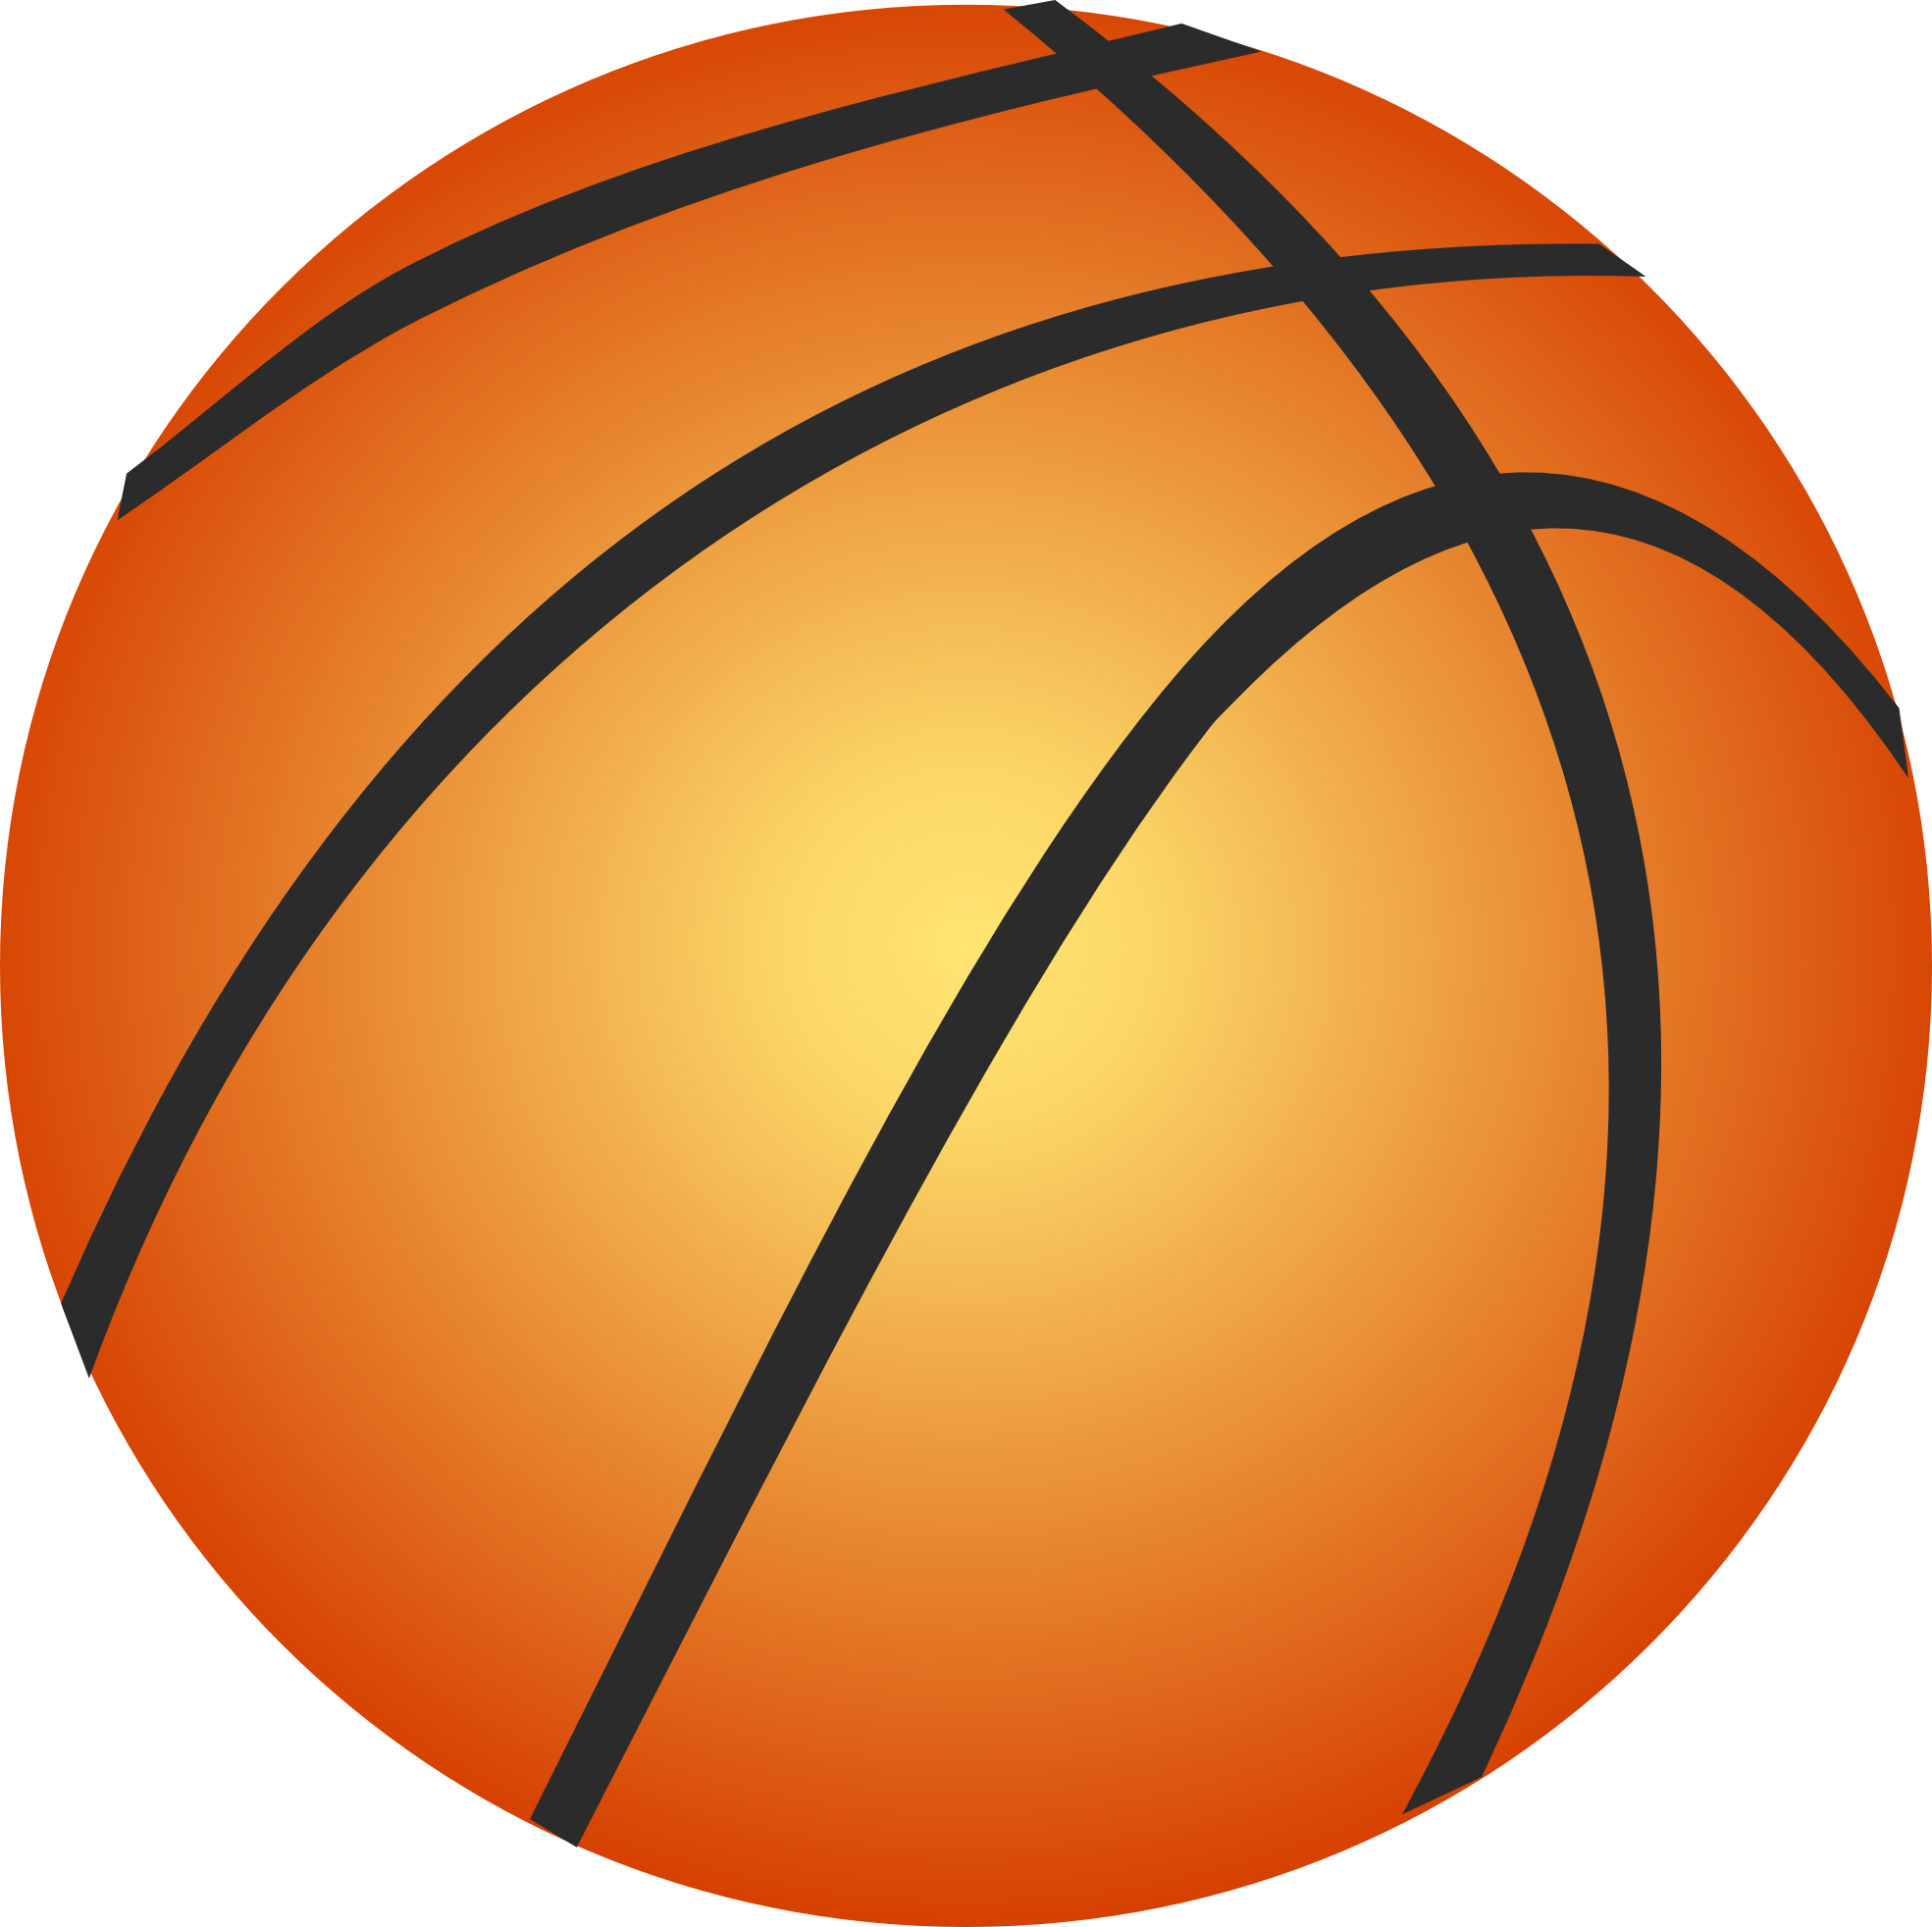 basketball court clipart black and white-basketball court clipart black and white-11